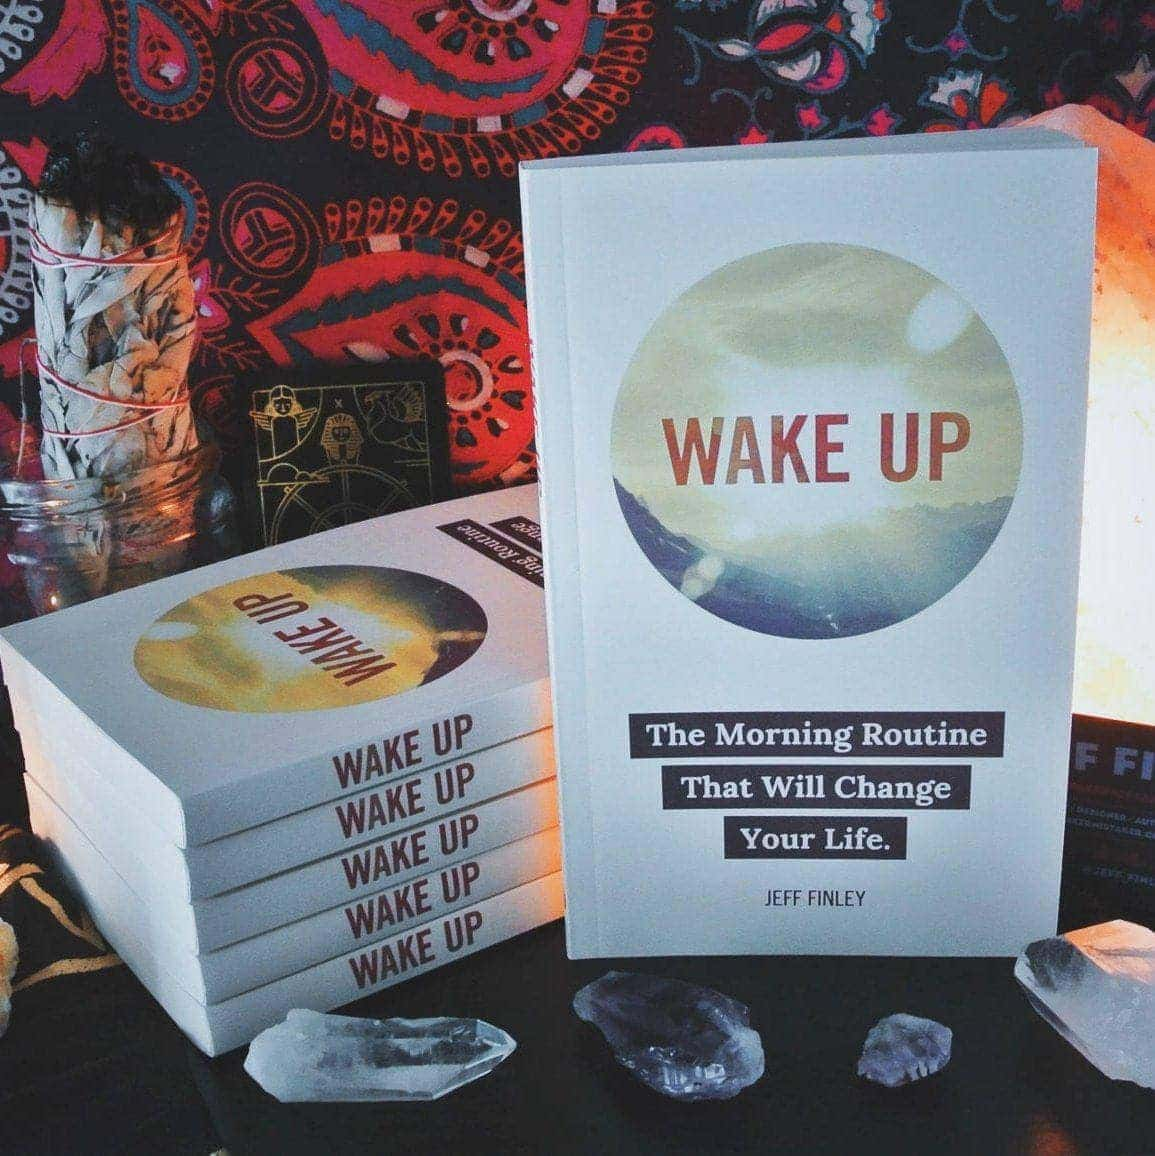 Wake Up Paperback Edition